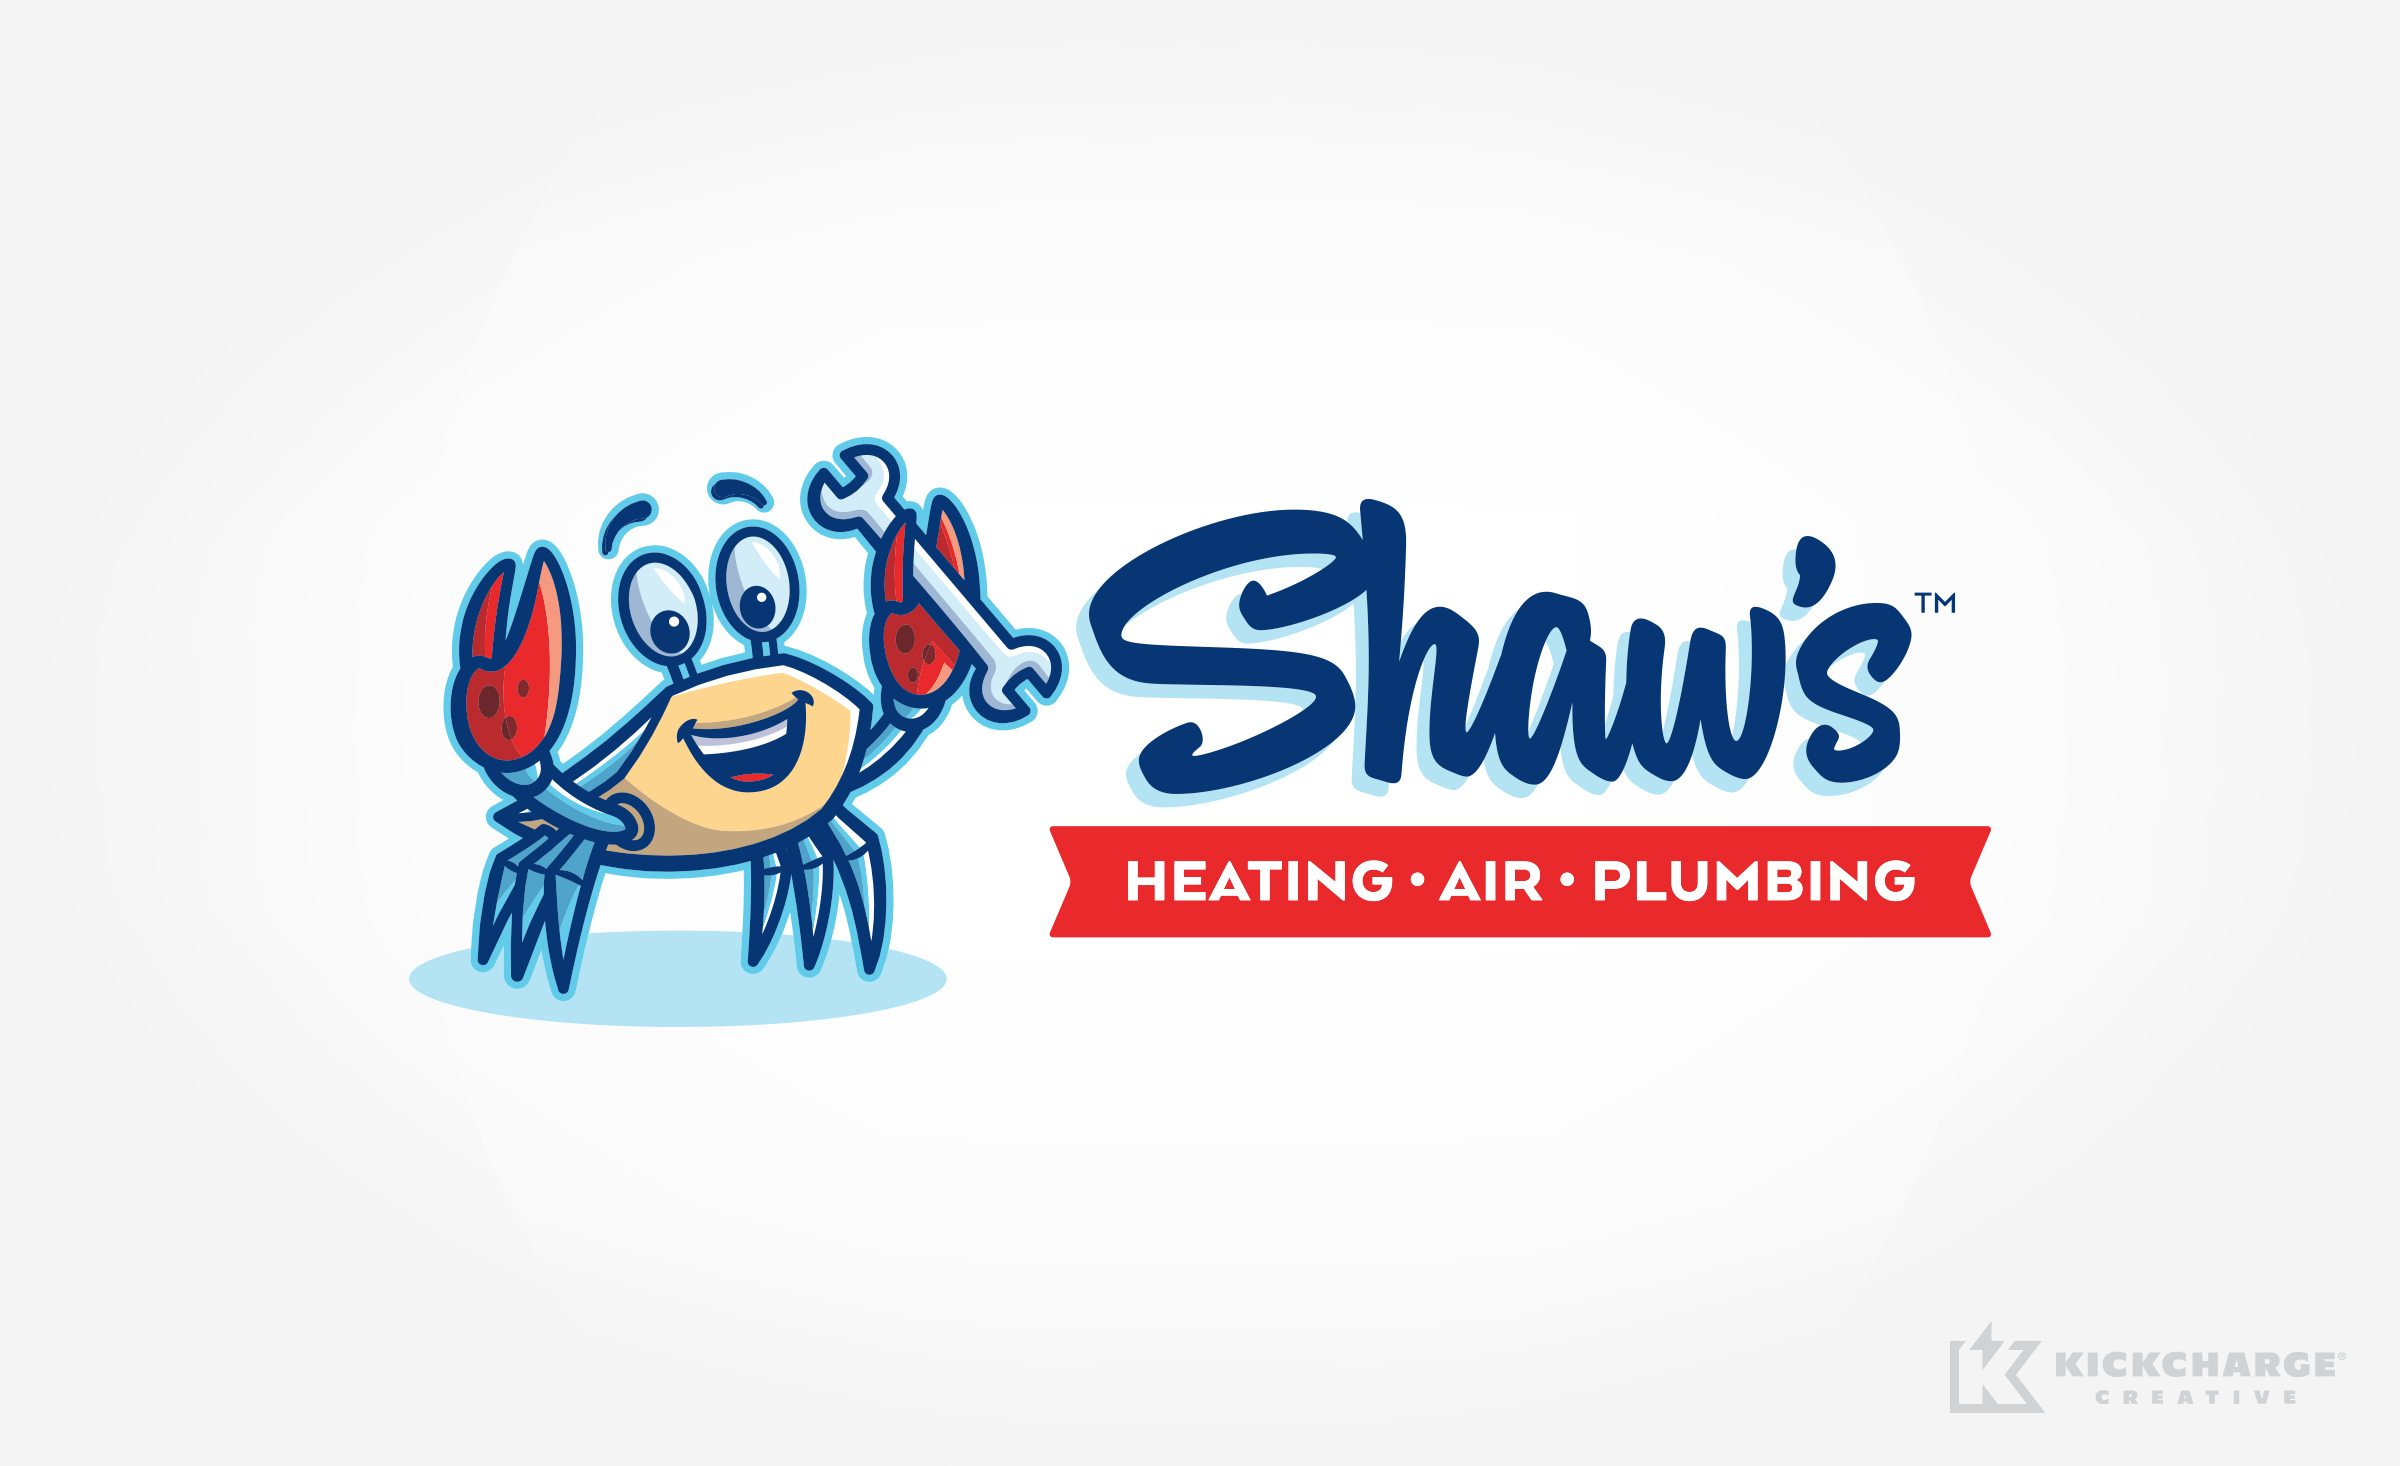 hvac and plumbing logo for Shaw's Heating, Air & Plumbing